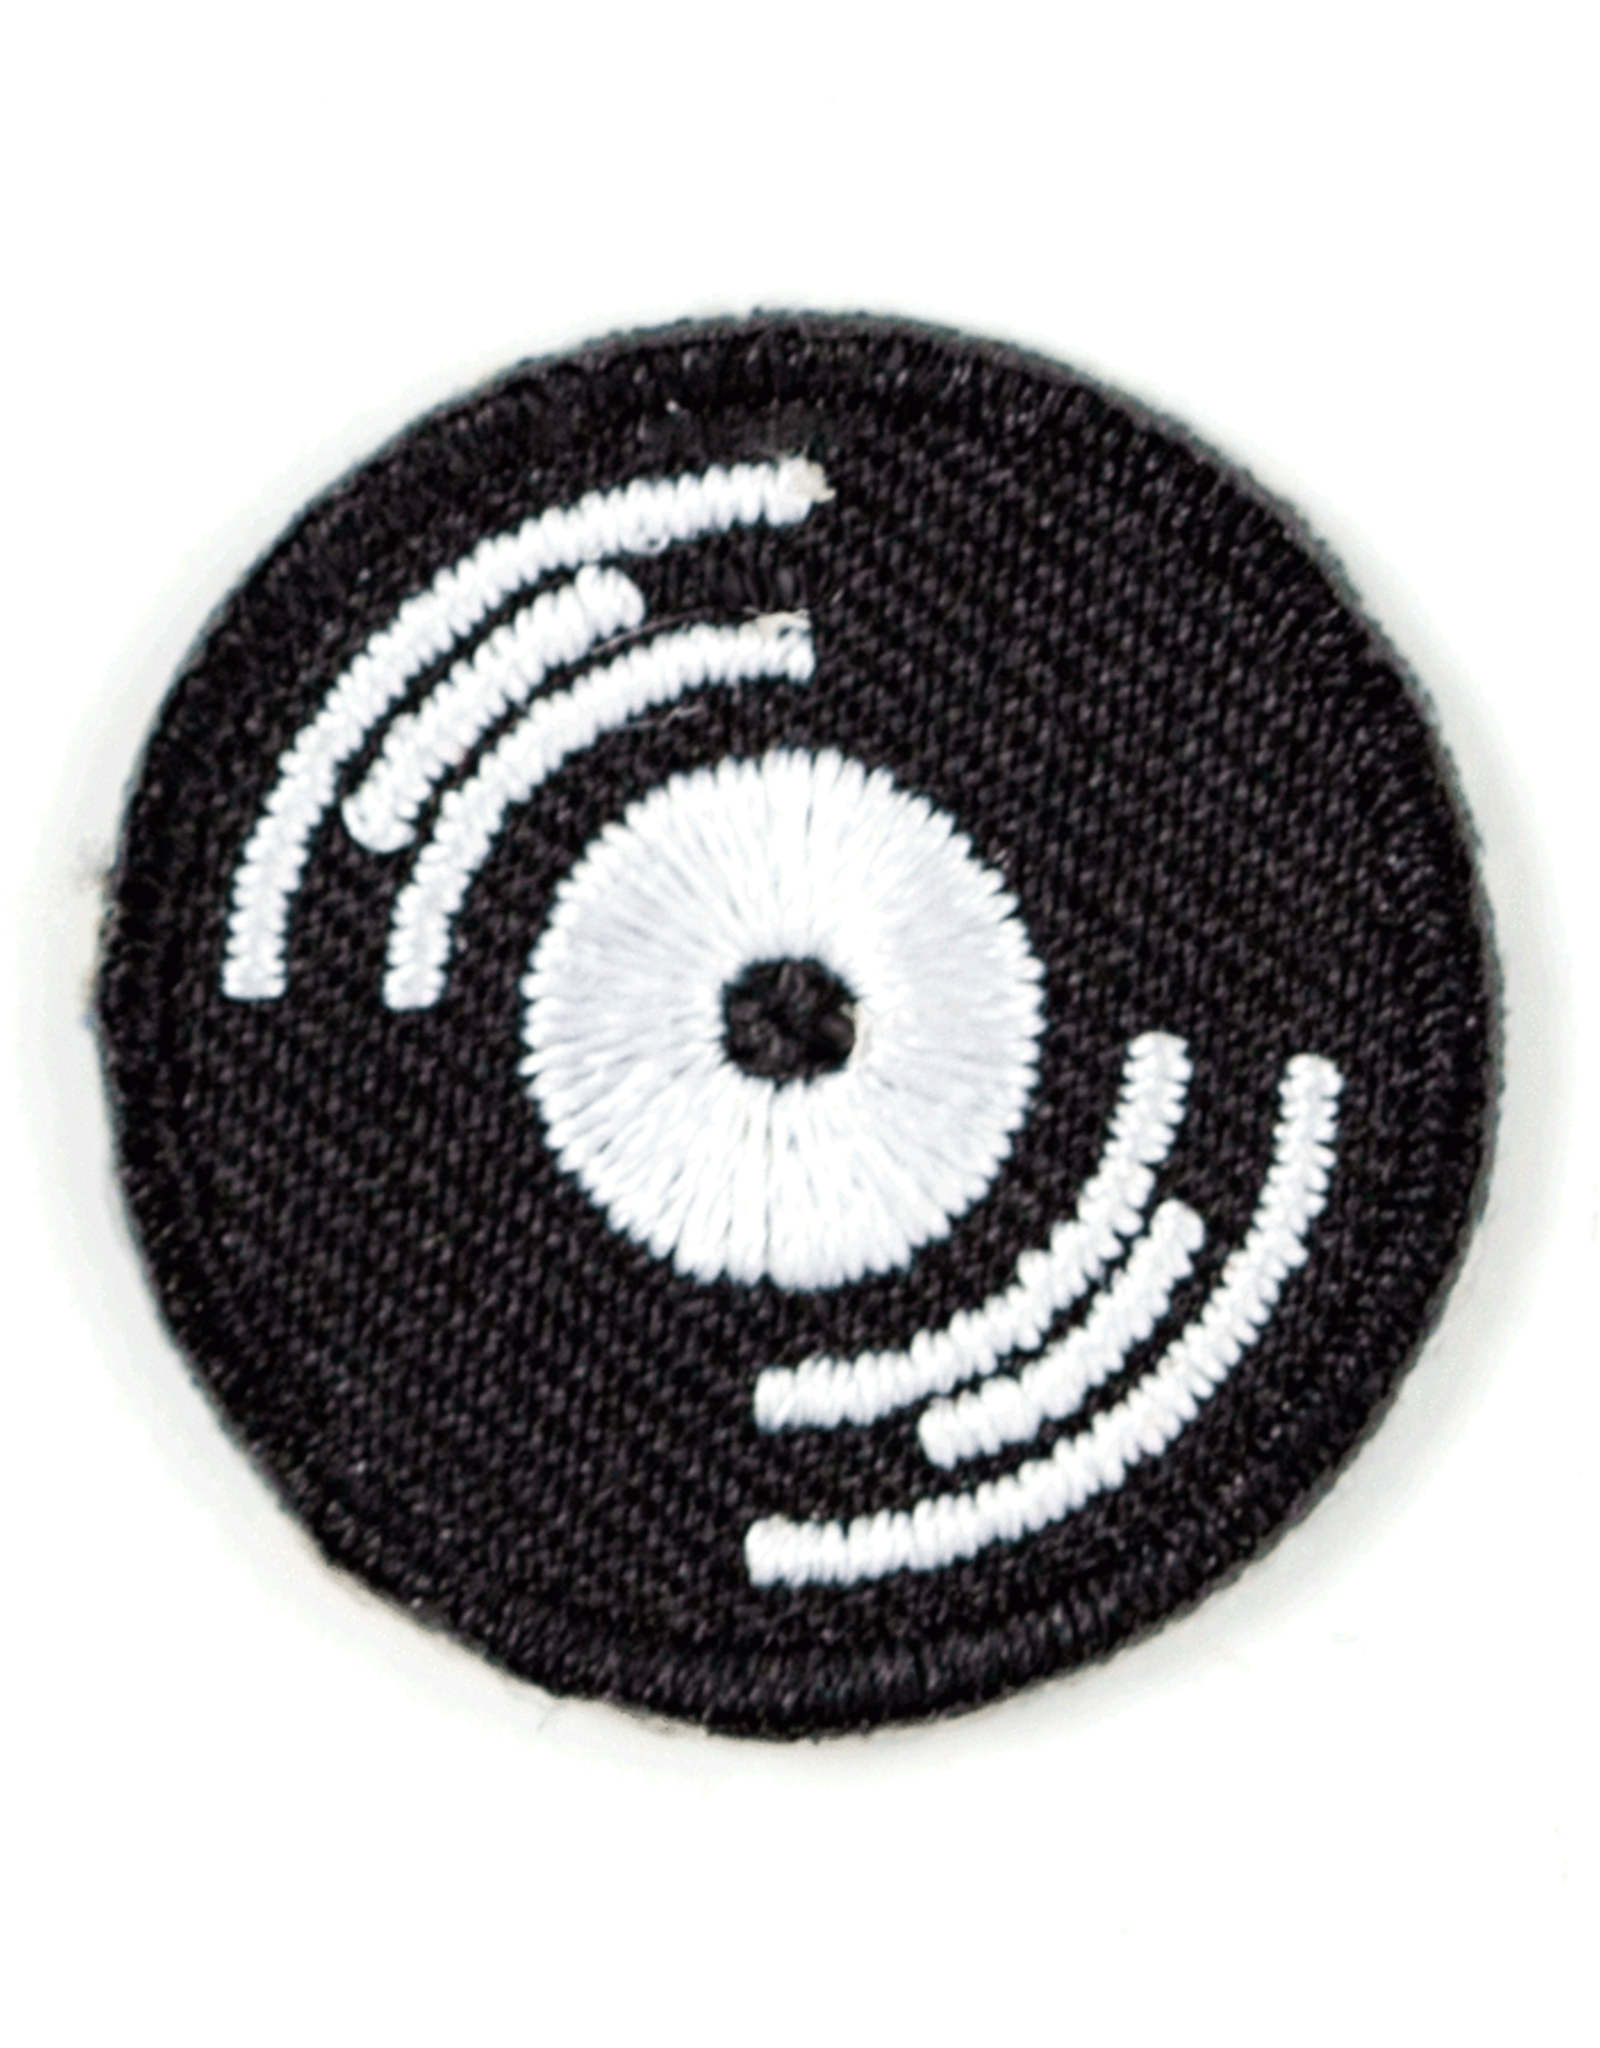 These Are Things Vinyl Record - Tiny Sticker Patch - These Are Things